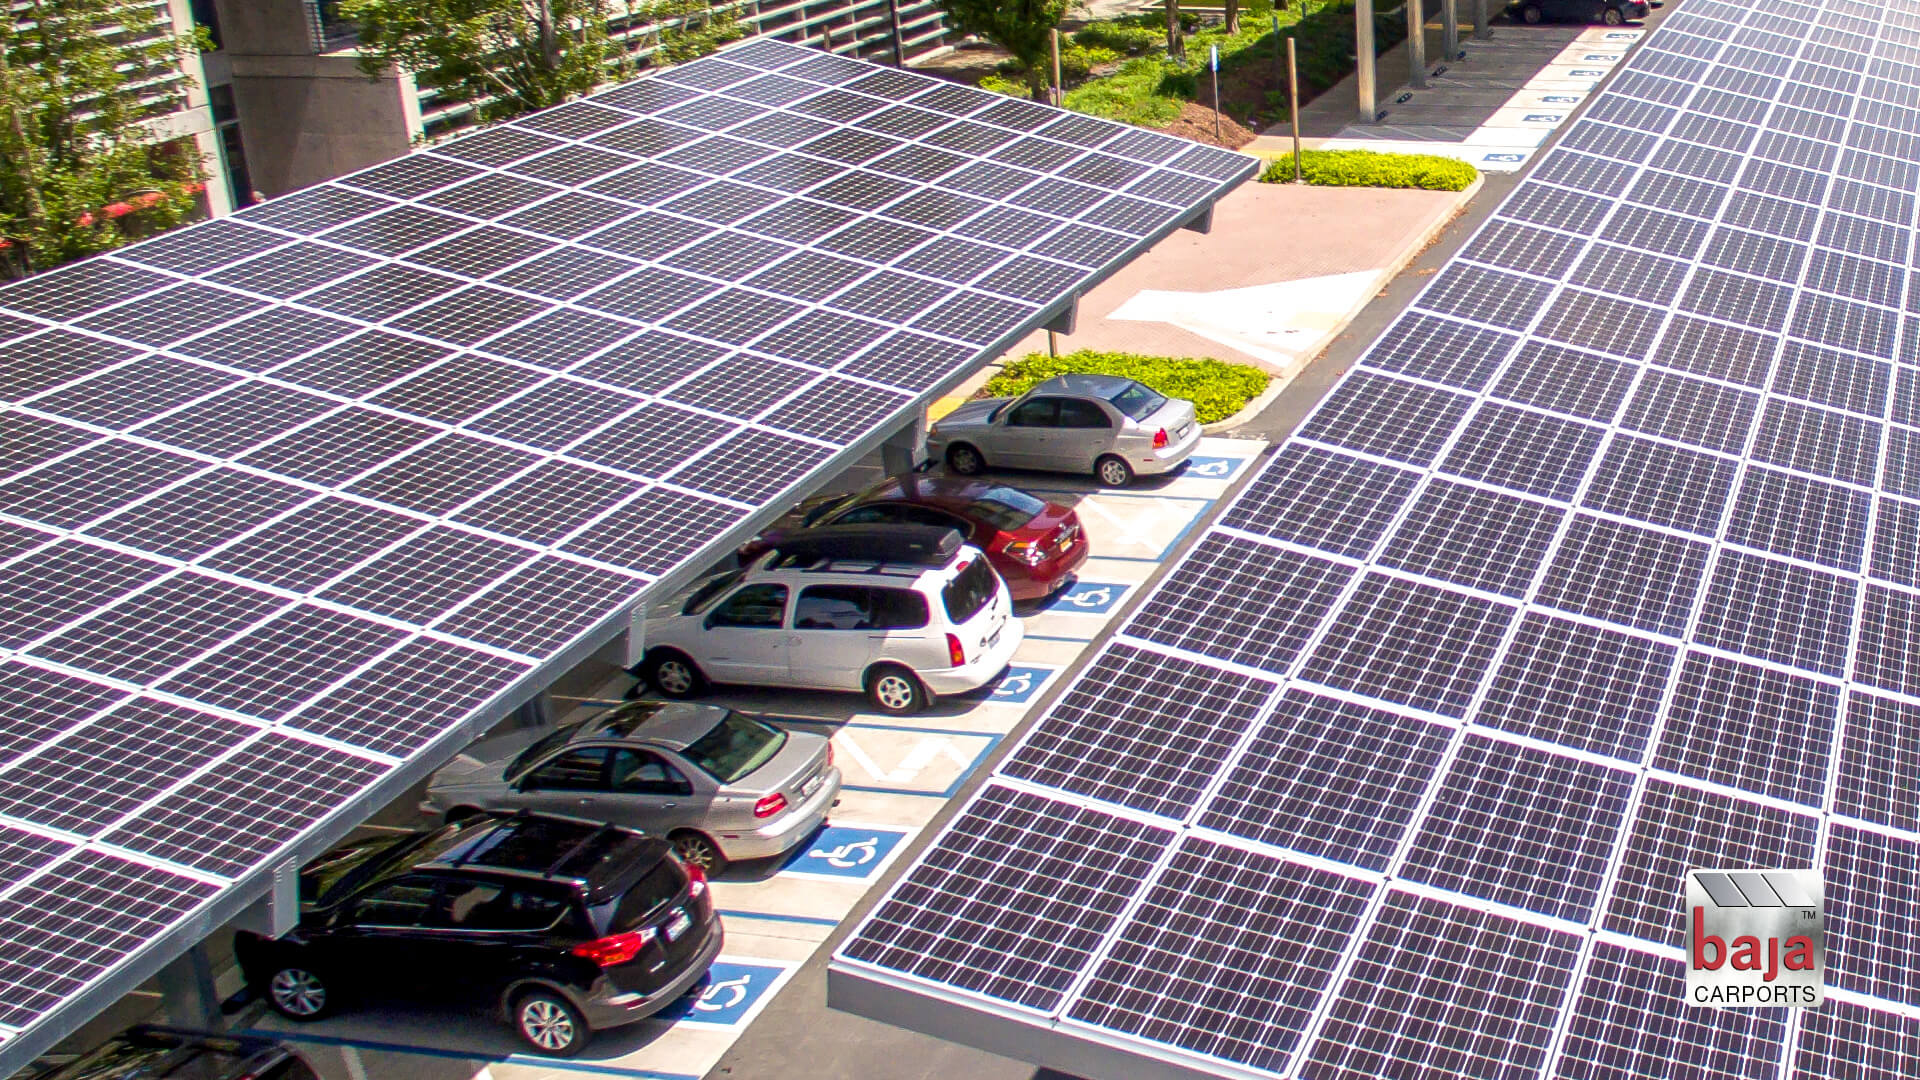 featured timelapse captures installation of solar carports